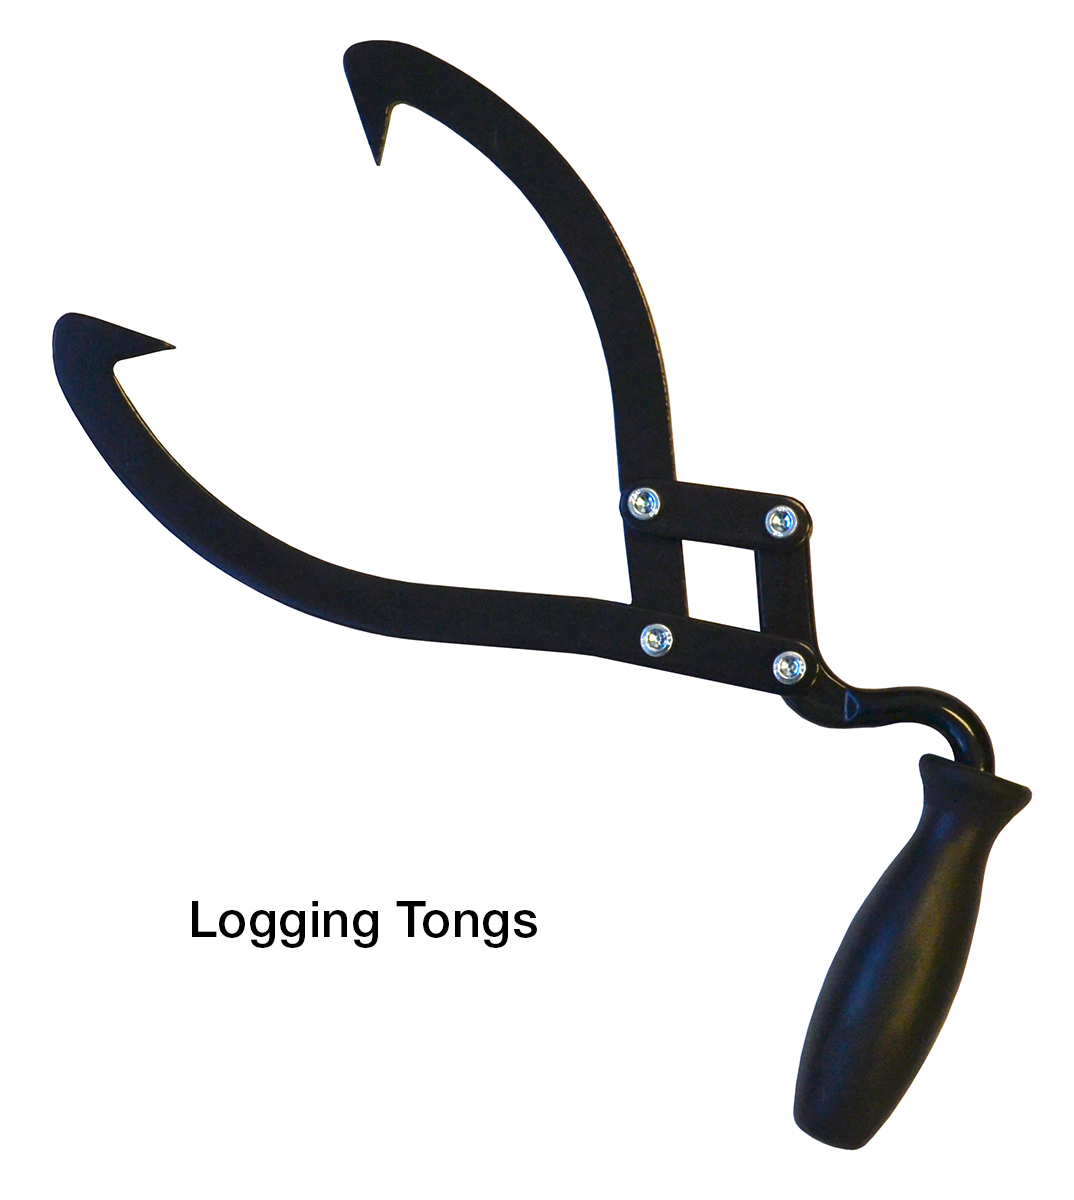 Logging Tongs